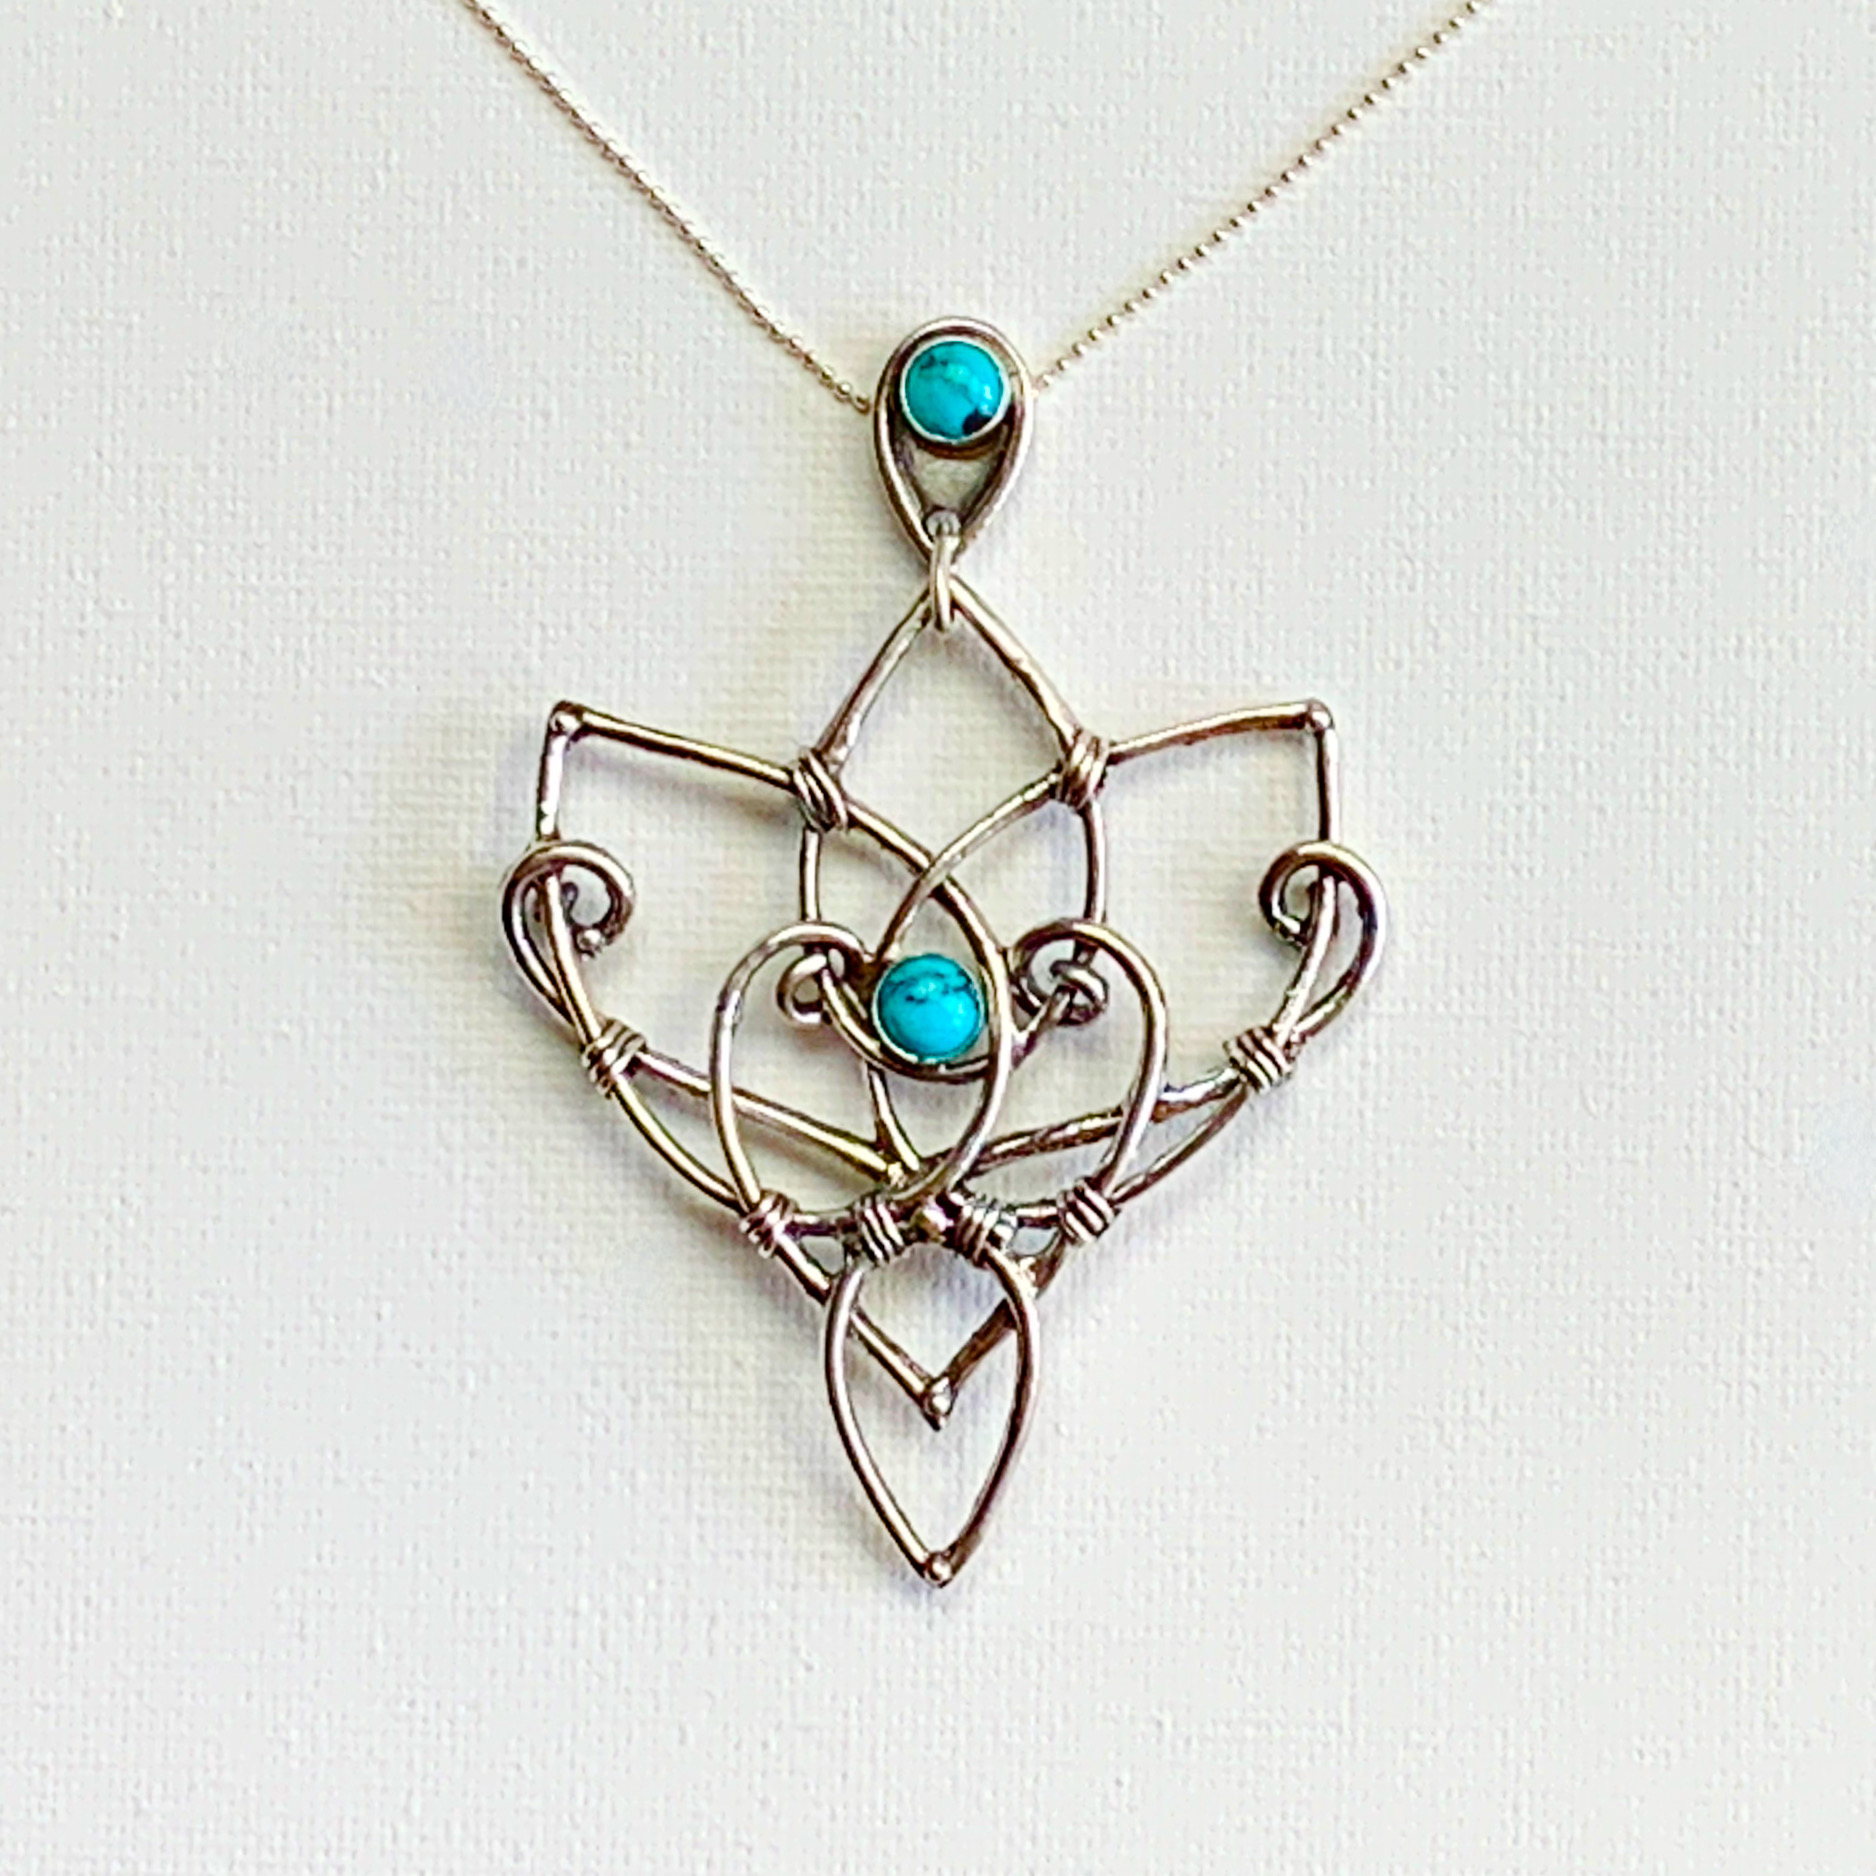 Inspired by Art Nouveau